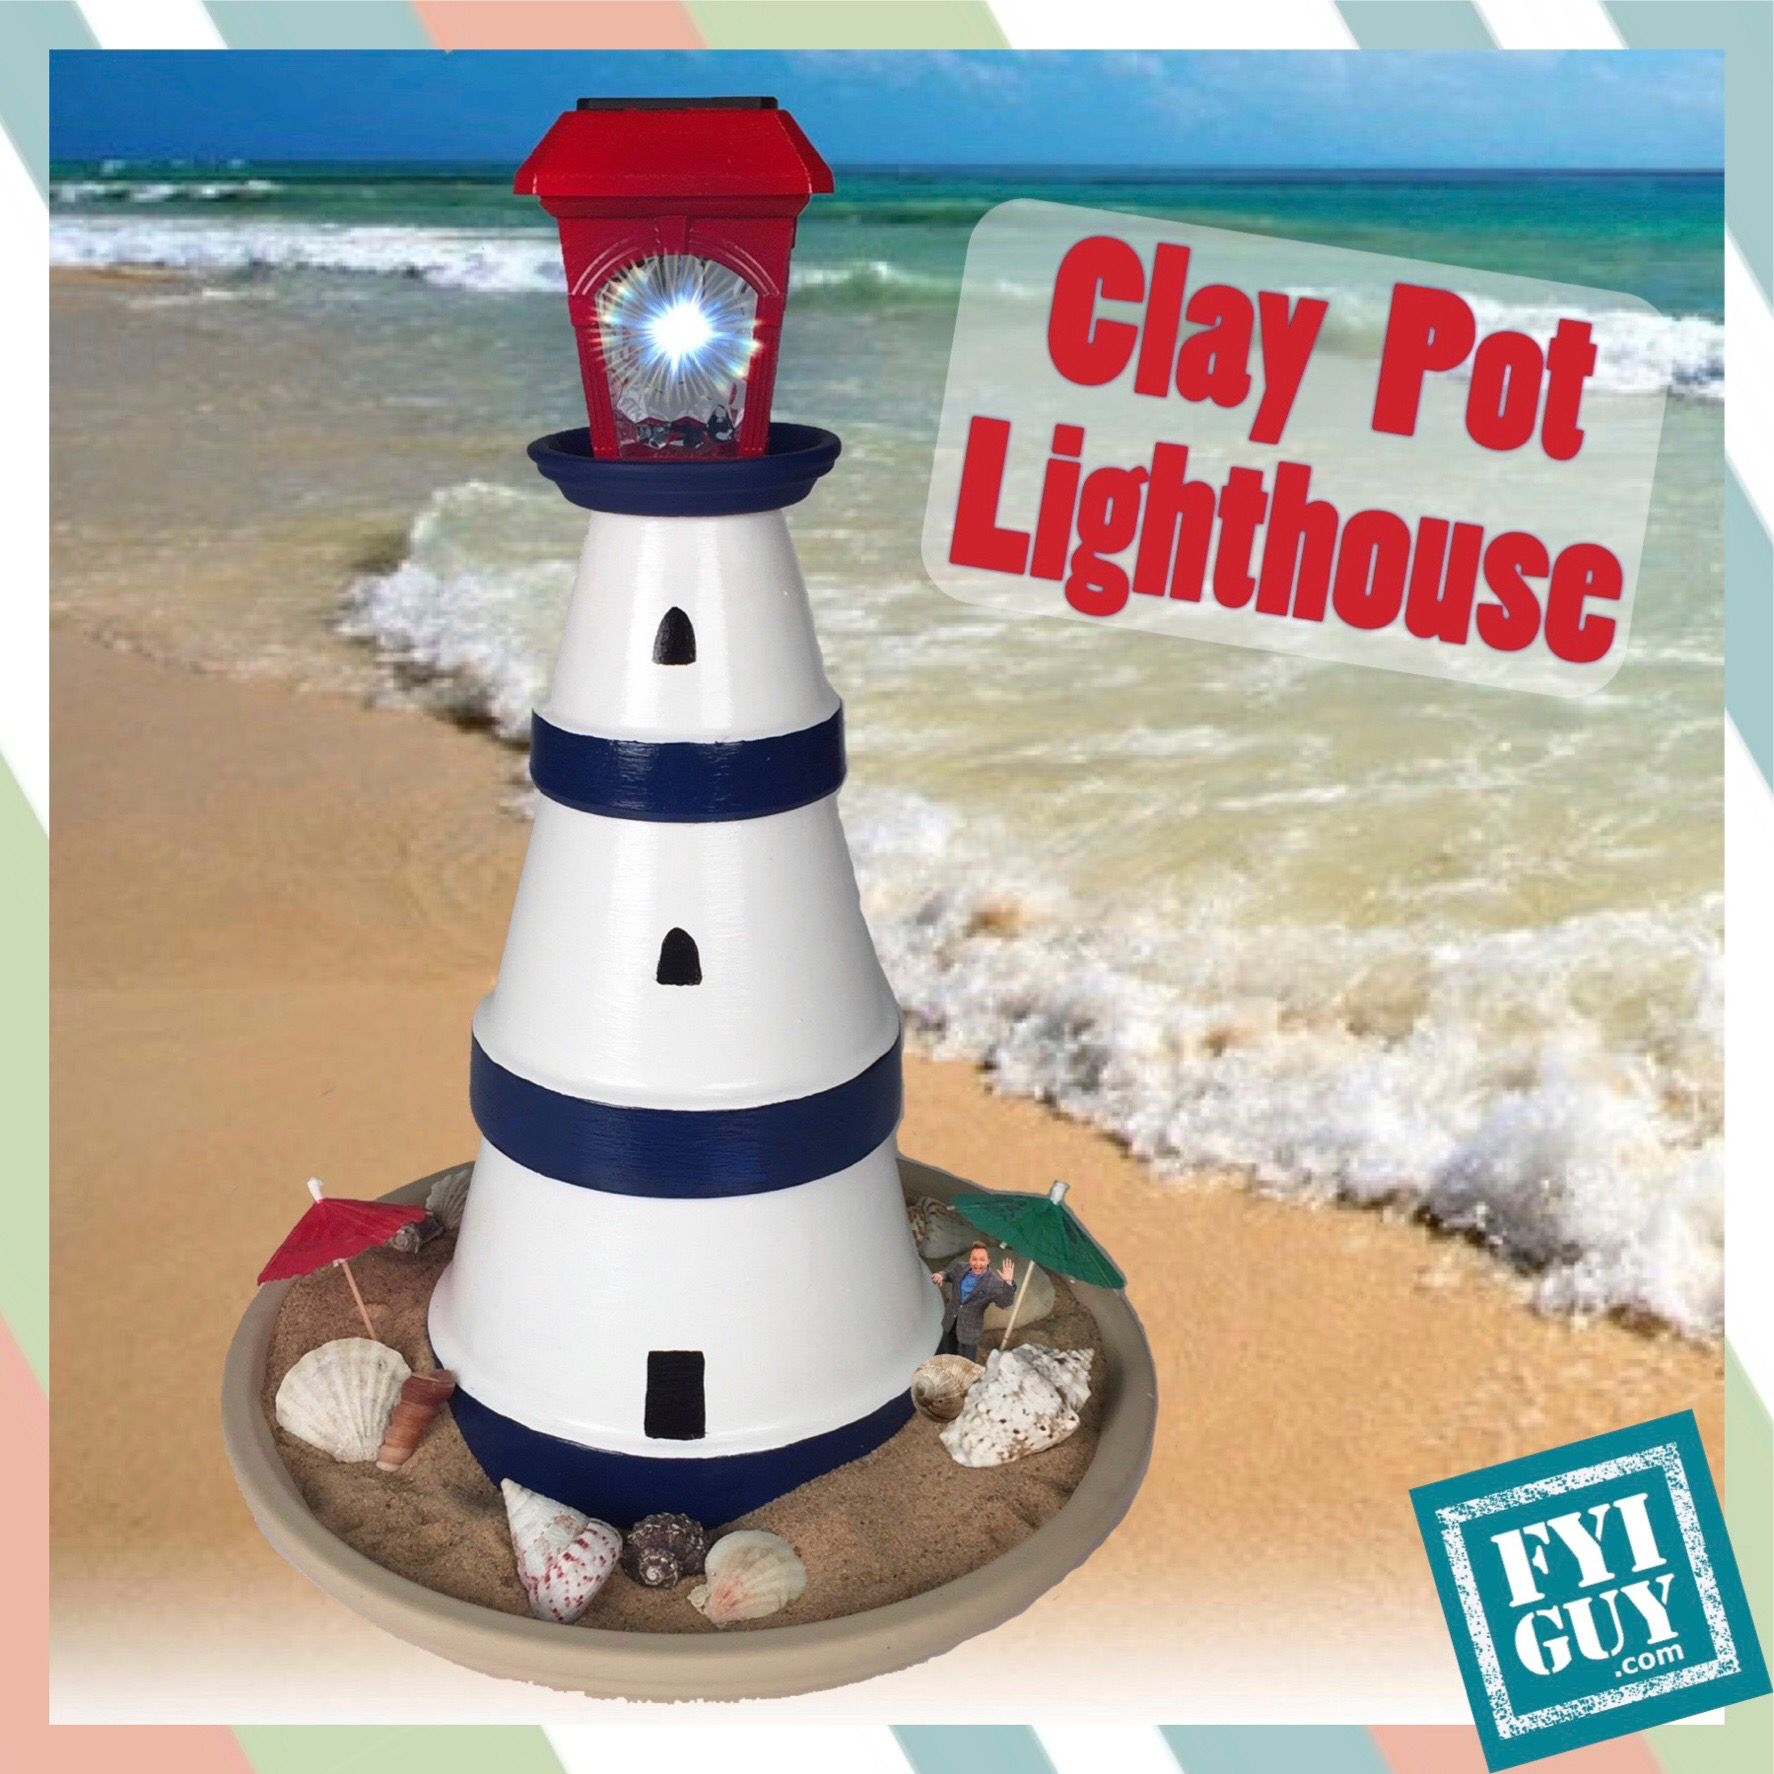 Diy make a clay pot lighthouse diy craft projects - Re Pin And Comment To Win The Clay Pot Lighthouse Www Fyiguy Com